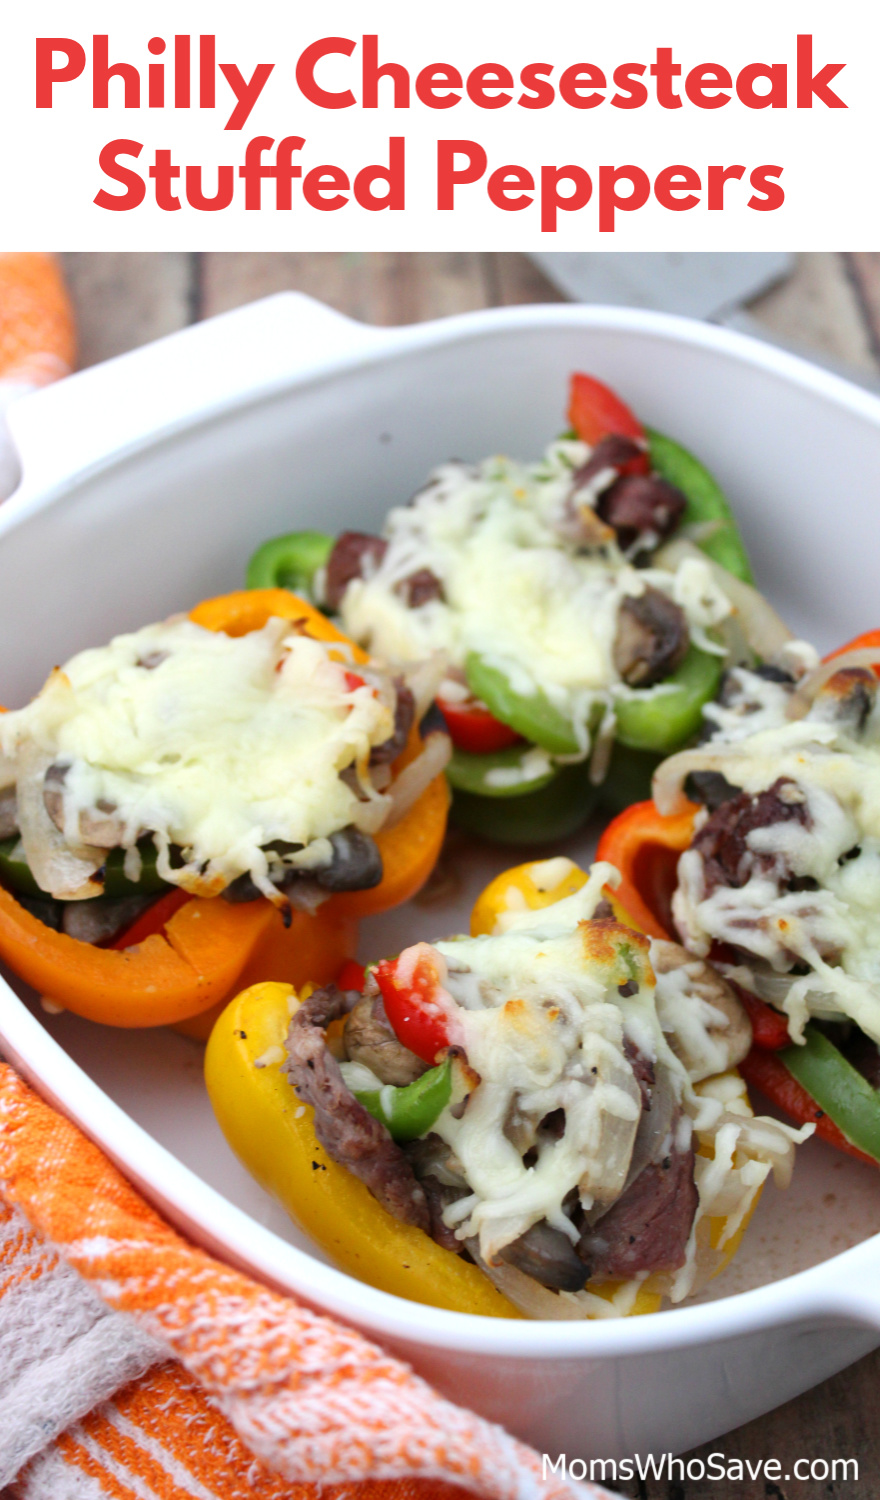 philly cheesesteak stuffed peppers recipe